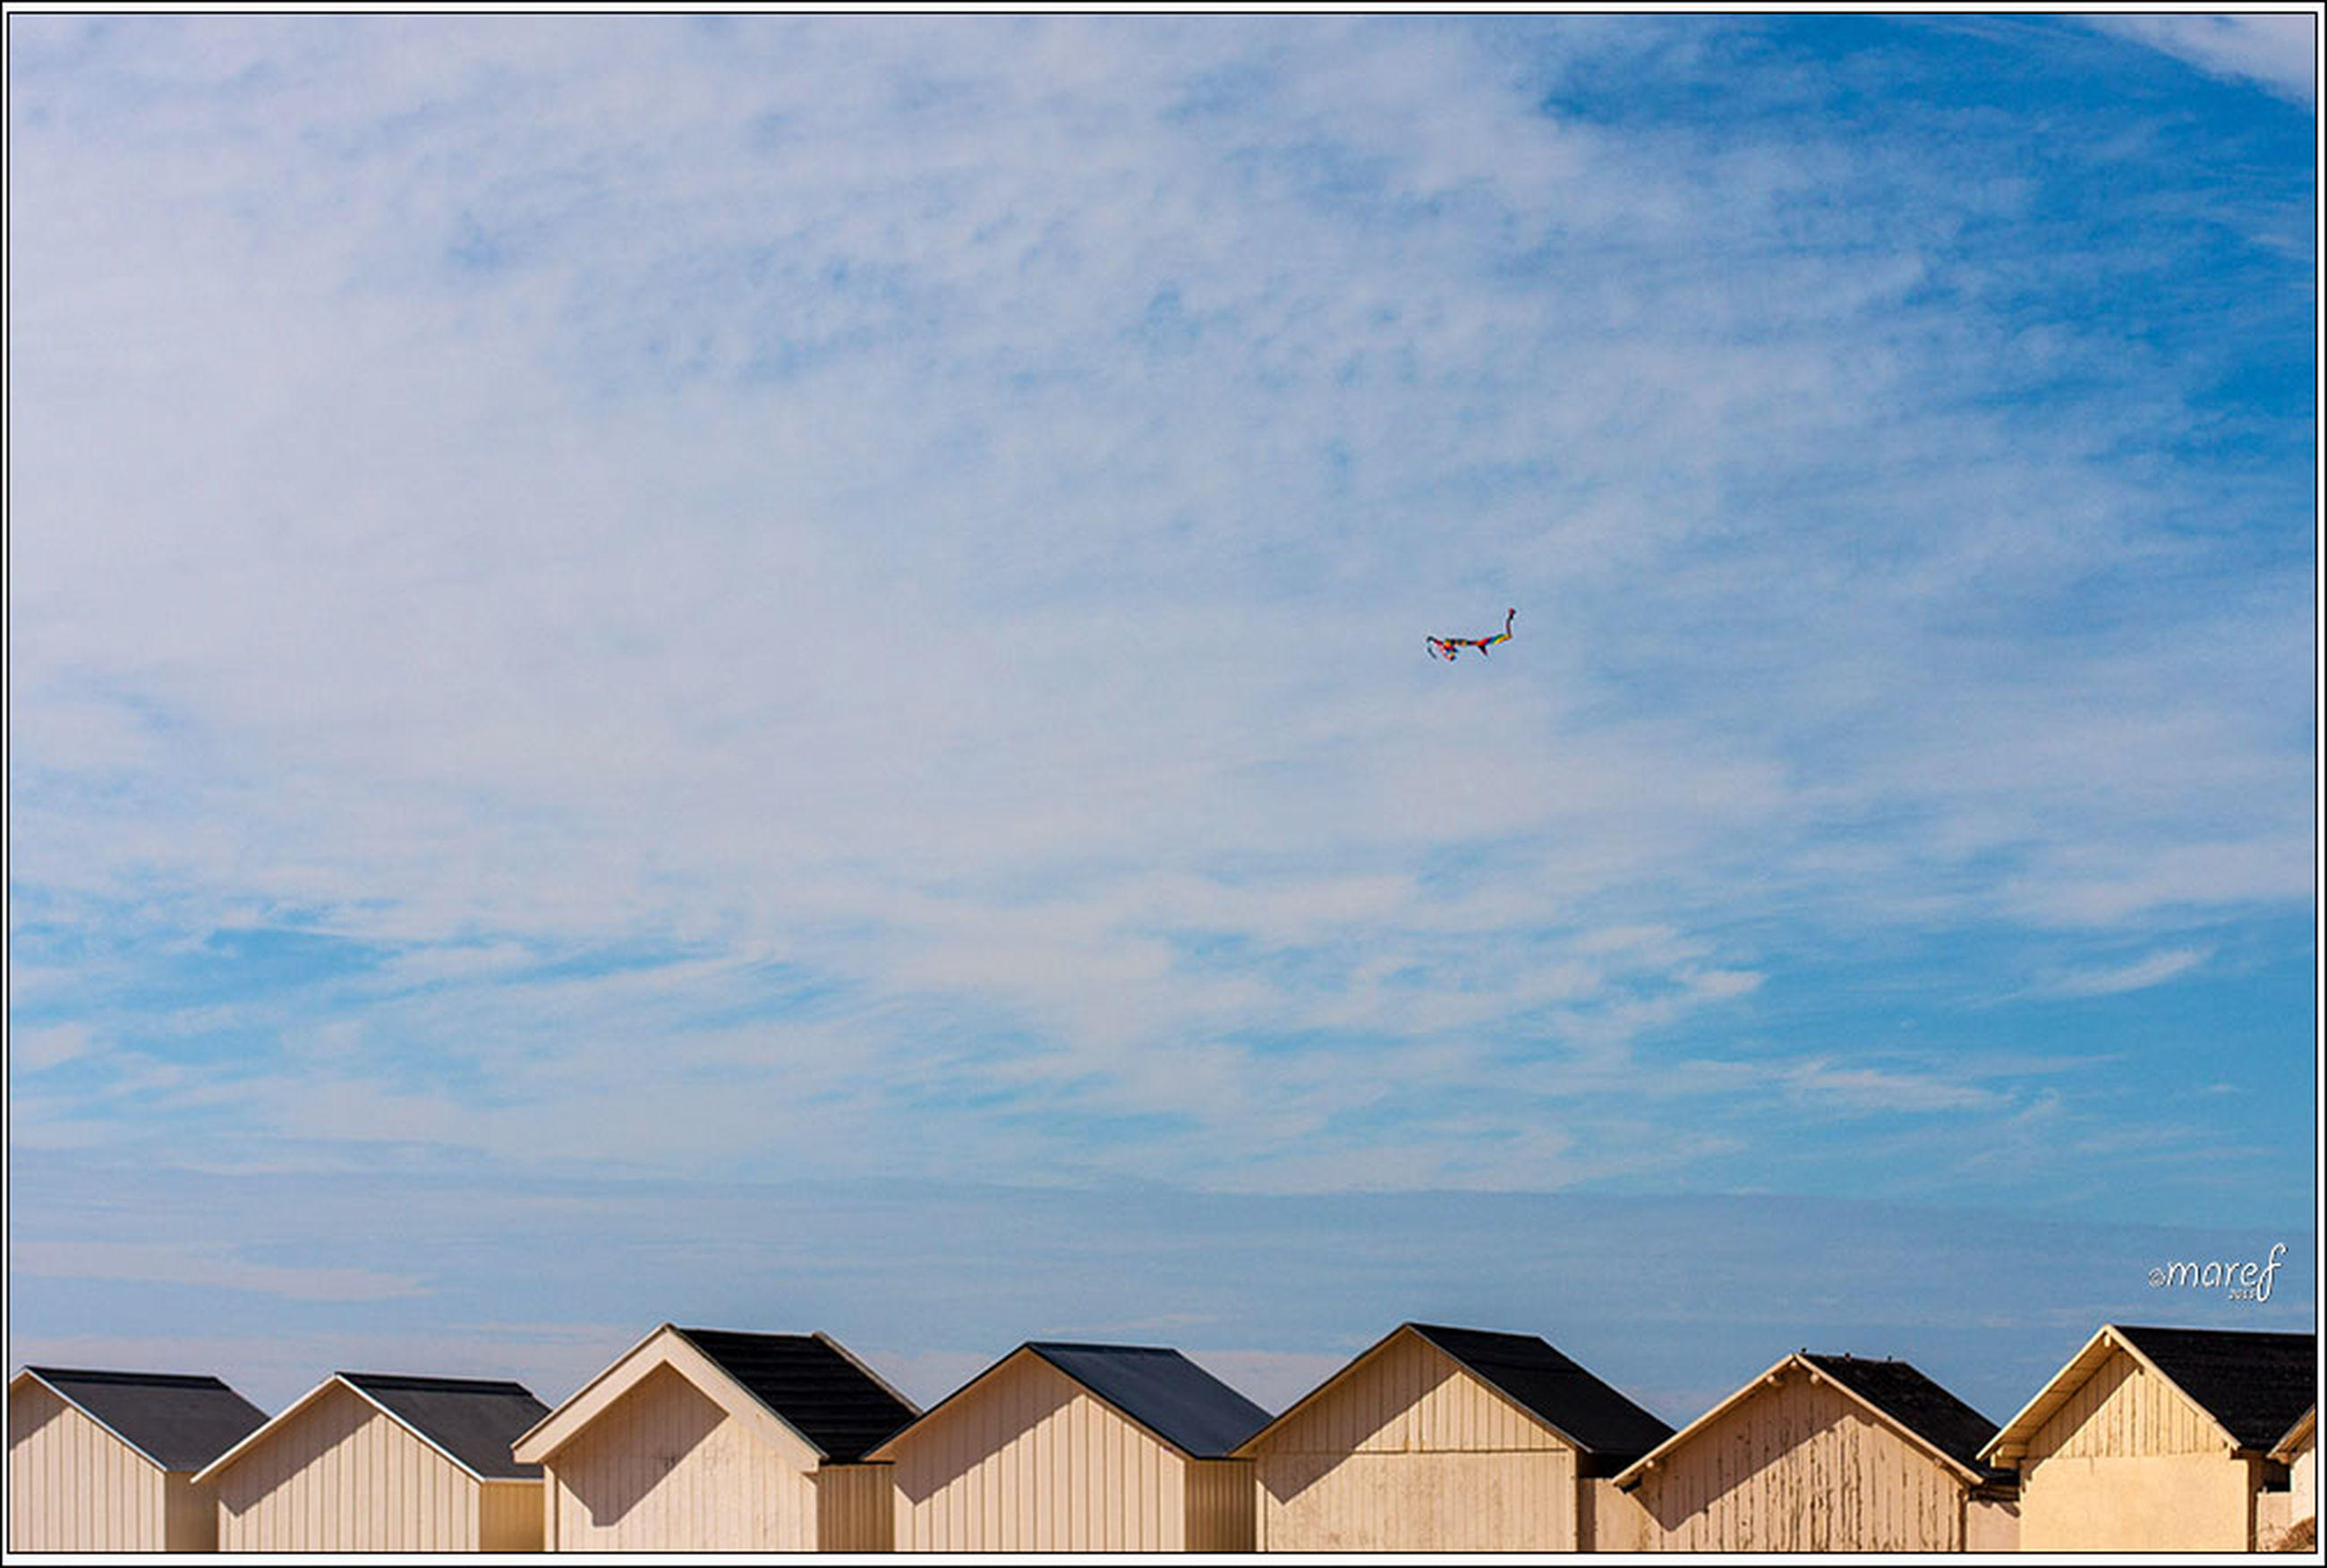 sky, cloud - sky, flying, blue, low angle view, cloud, cloudy, airplane, built structure, mid-air, day, transfer print, air vehicle, outdoors, architecture, transportation, auto post production filter, nature, building exterior, sea